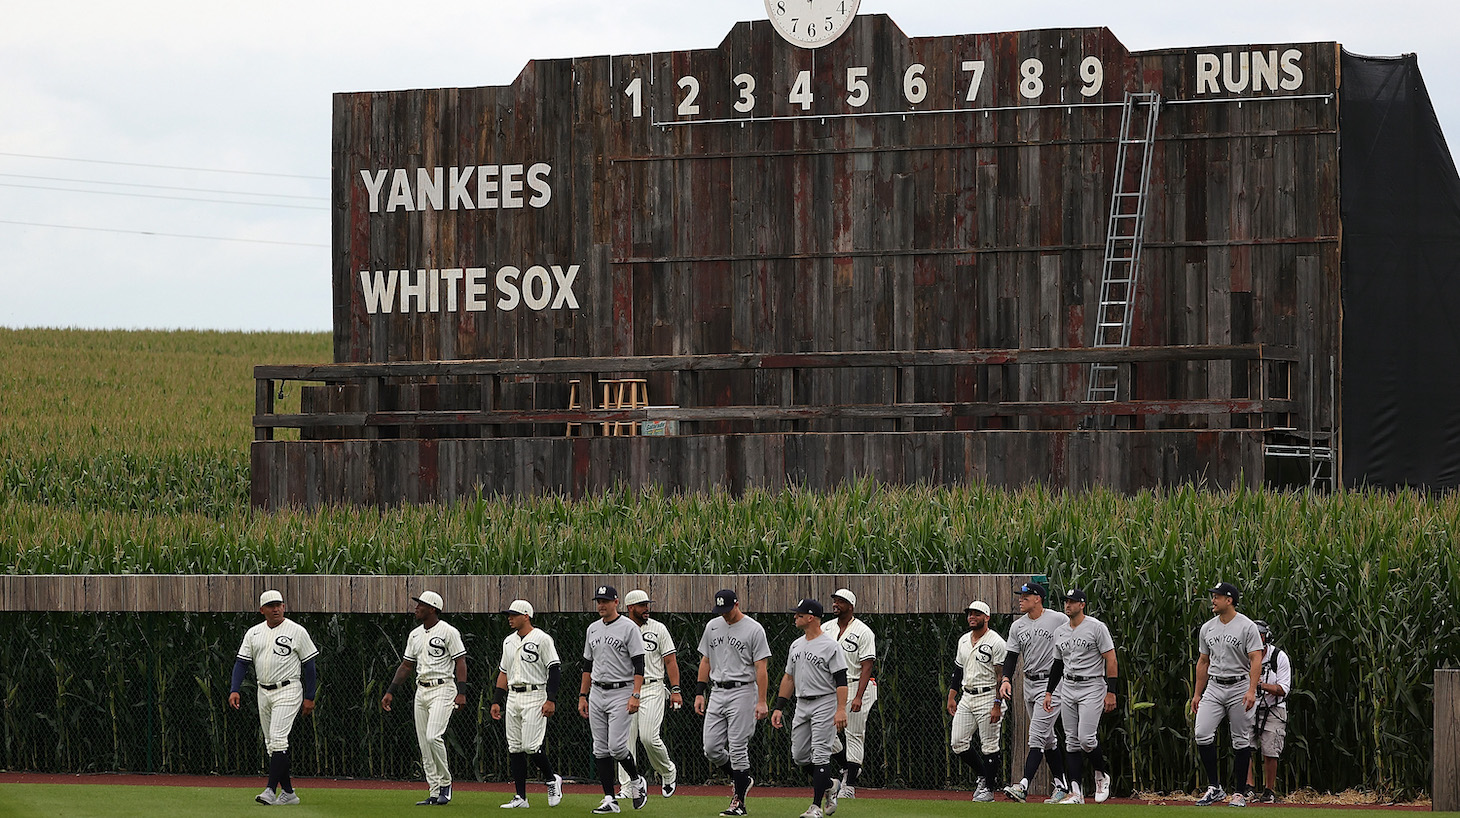 DYERSVILLE, IOWA - AUGUST 12: Members of the Chicago White Sox and the New York Yankees take the field prior to a game at the Field of Dreams on August 12, 2021 in Dyersville, Iowa. (Photo by Stacy Revere/Getty Images)